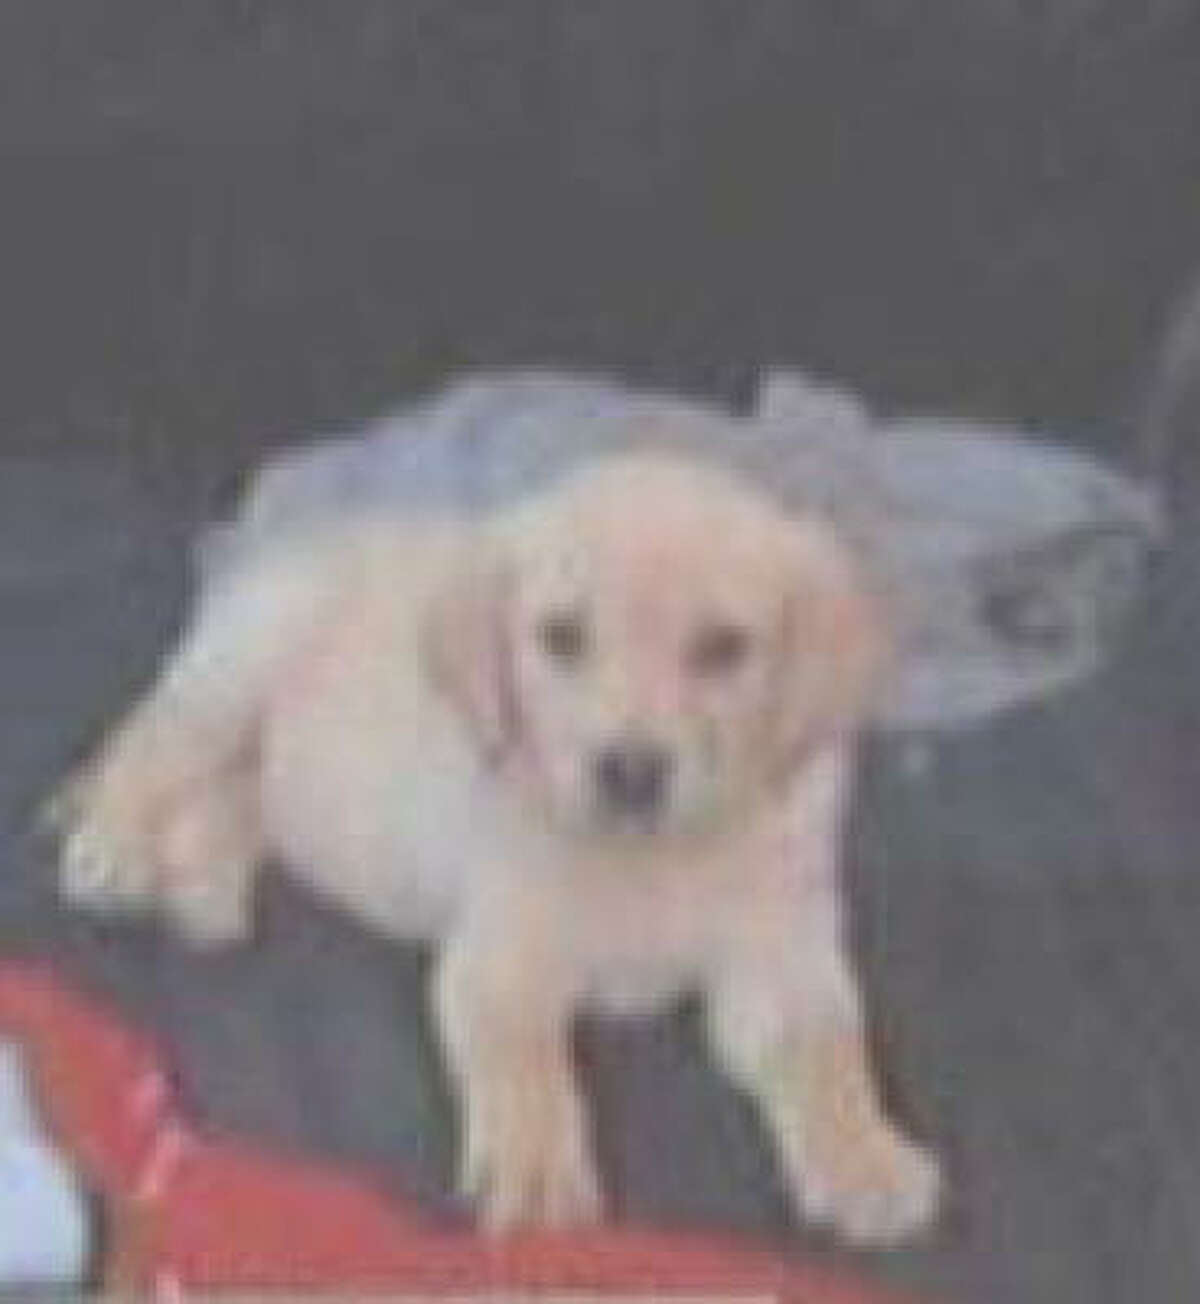 Dasy, a Lab, was shot April 1 at age 4.